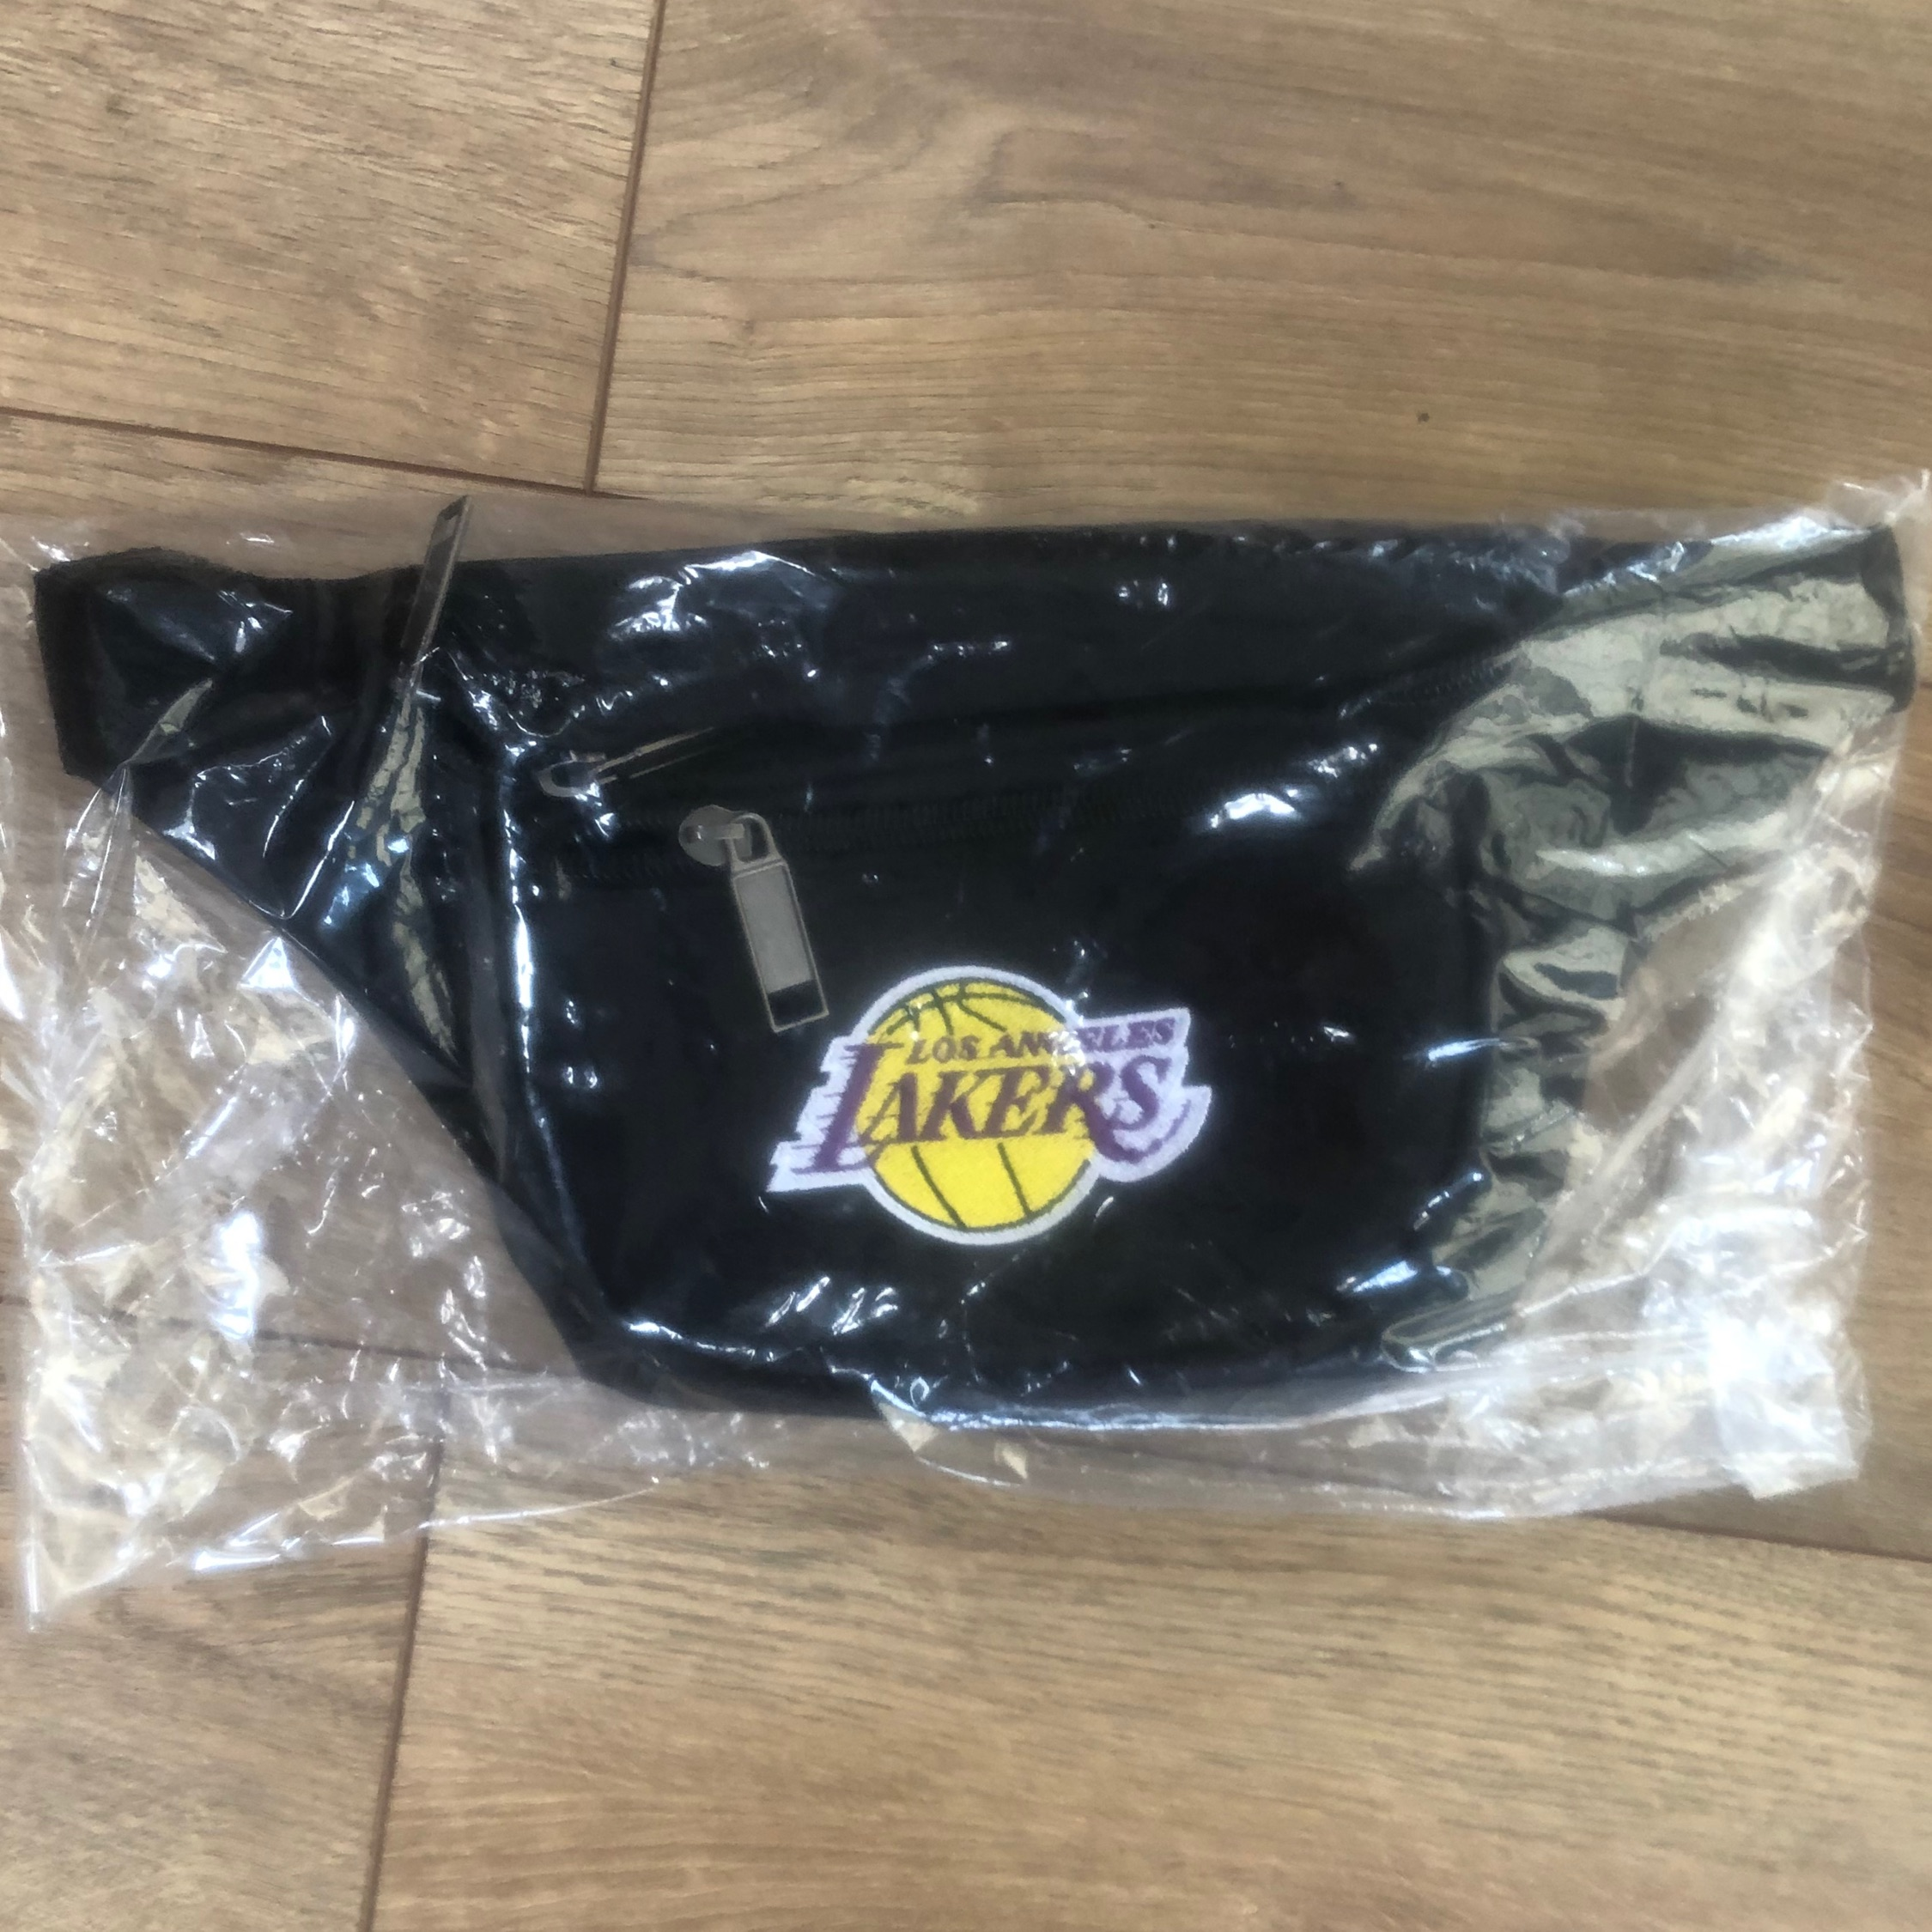 Nba Los Angeles Lakers Official Fanny Pack Black